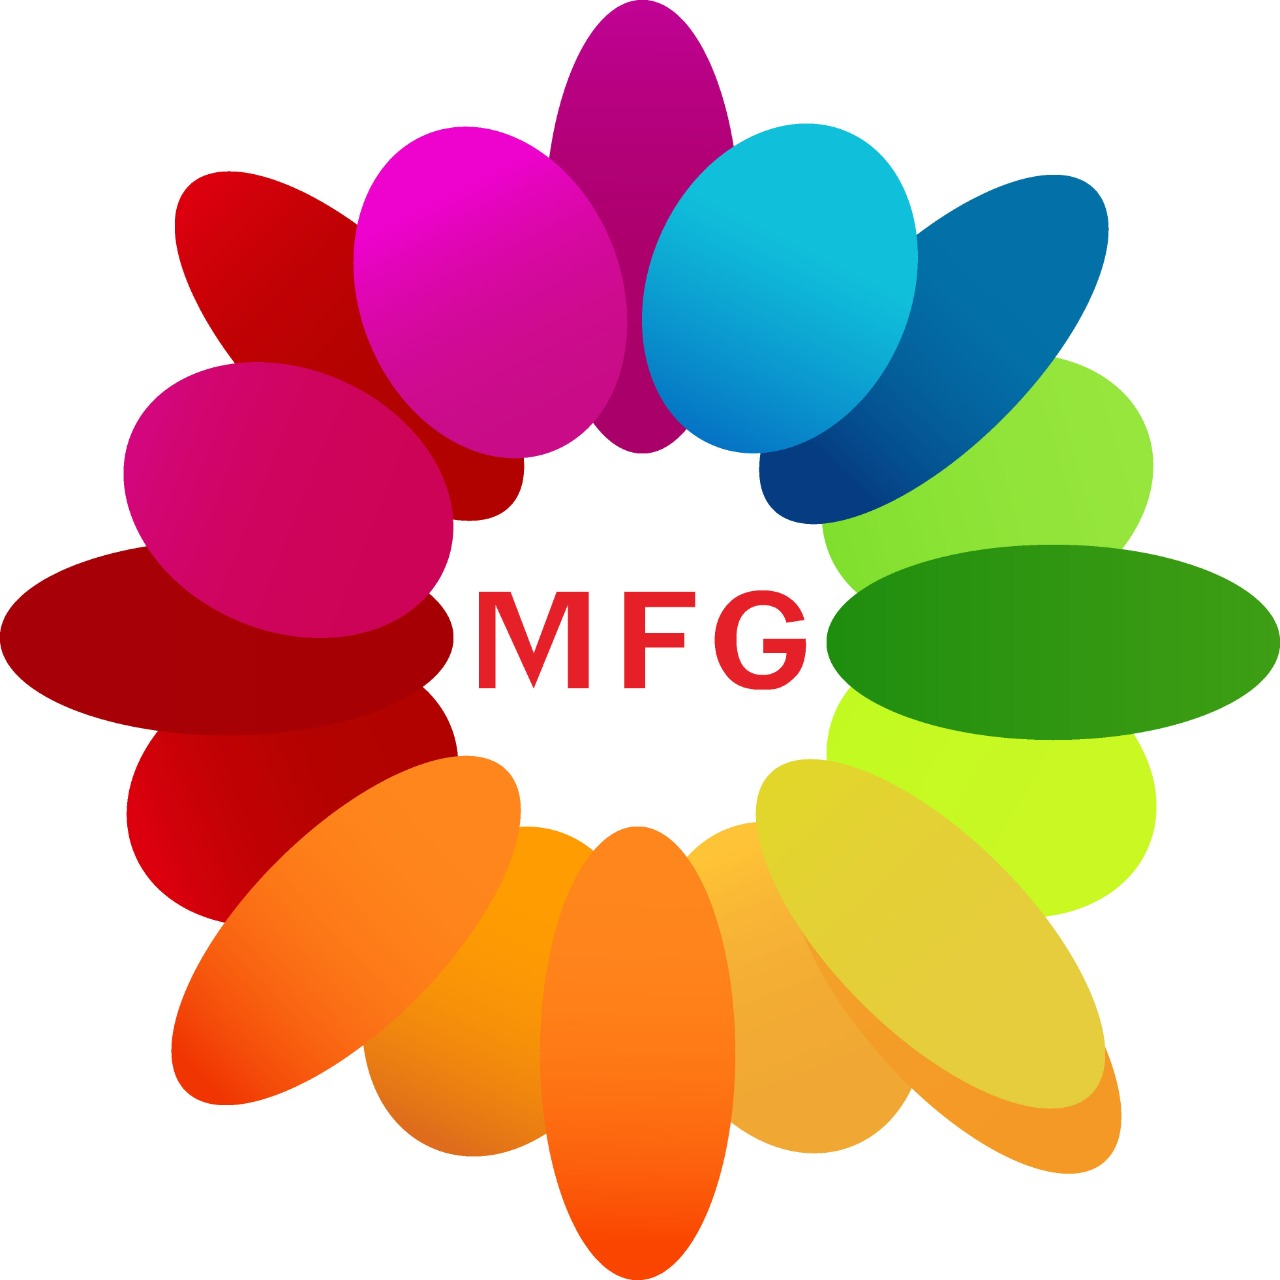 Basket of 50 red and white roses with 1 pound butterscotch fresh cream cake with 3 heart shape balloons